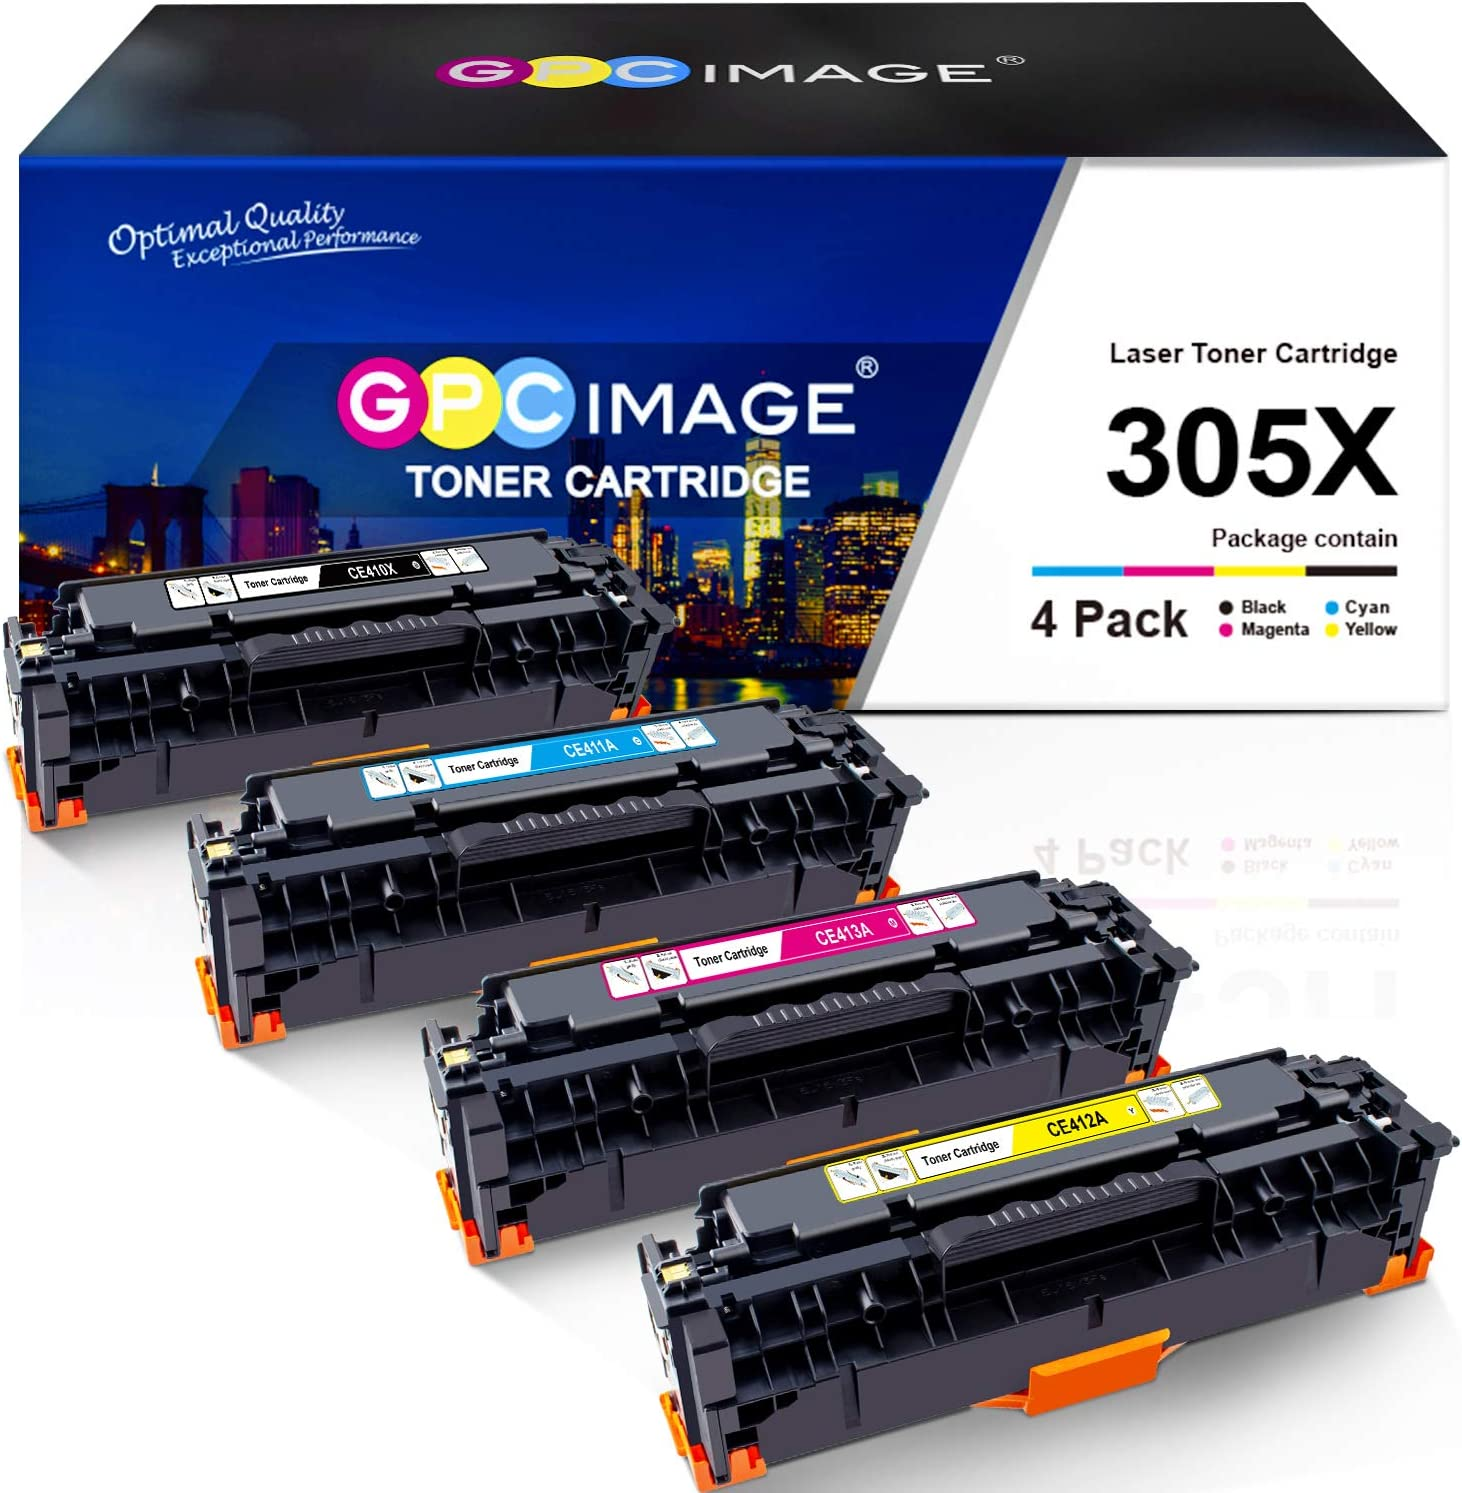 GPC Image Remanufactured Toner Cartridge Replacement for HP 305X 305A CE410X to use with Laserjet Pro 400 Color M451dw M451dn M451nw MFP M475dw M475dn M375nw Printer (Black, Cyan, Magenta, Yellow)